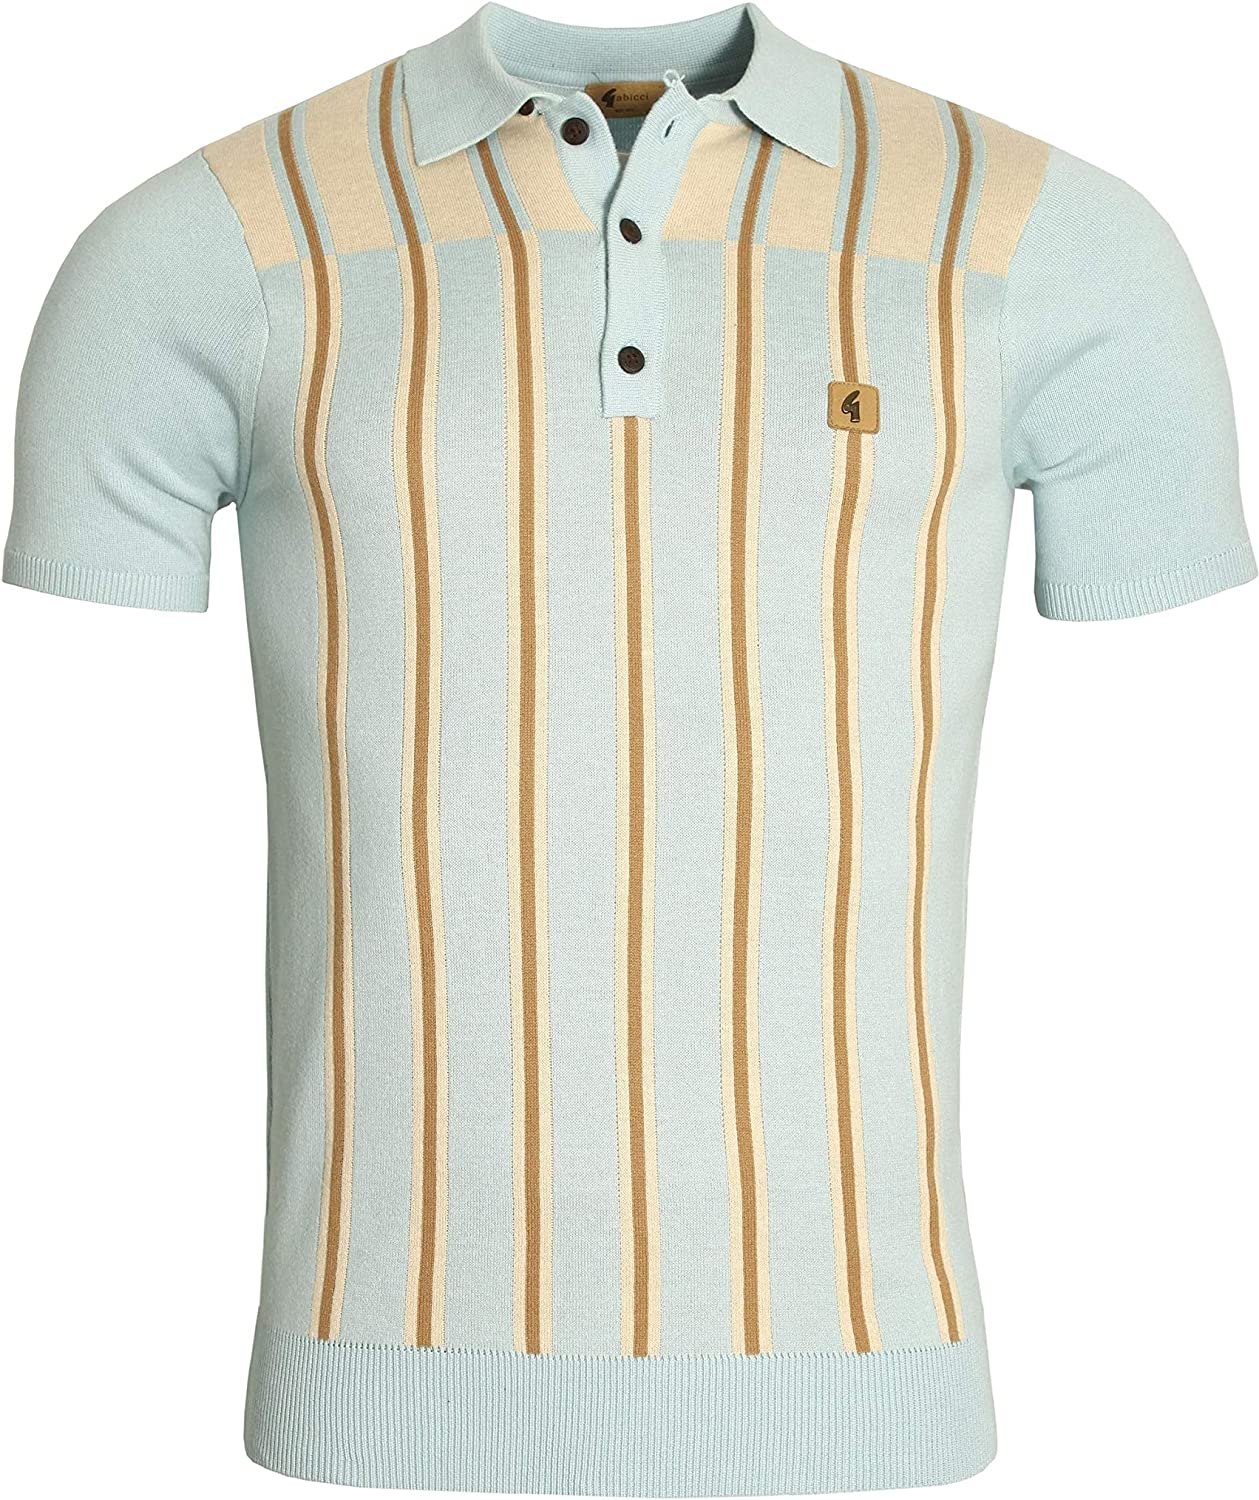 Gabicci Holmdene Boating Stripe Yolk Polo Shirt | Mist Large ...